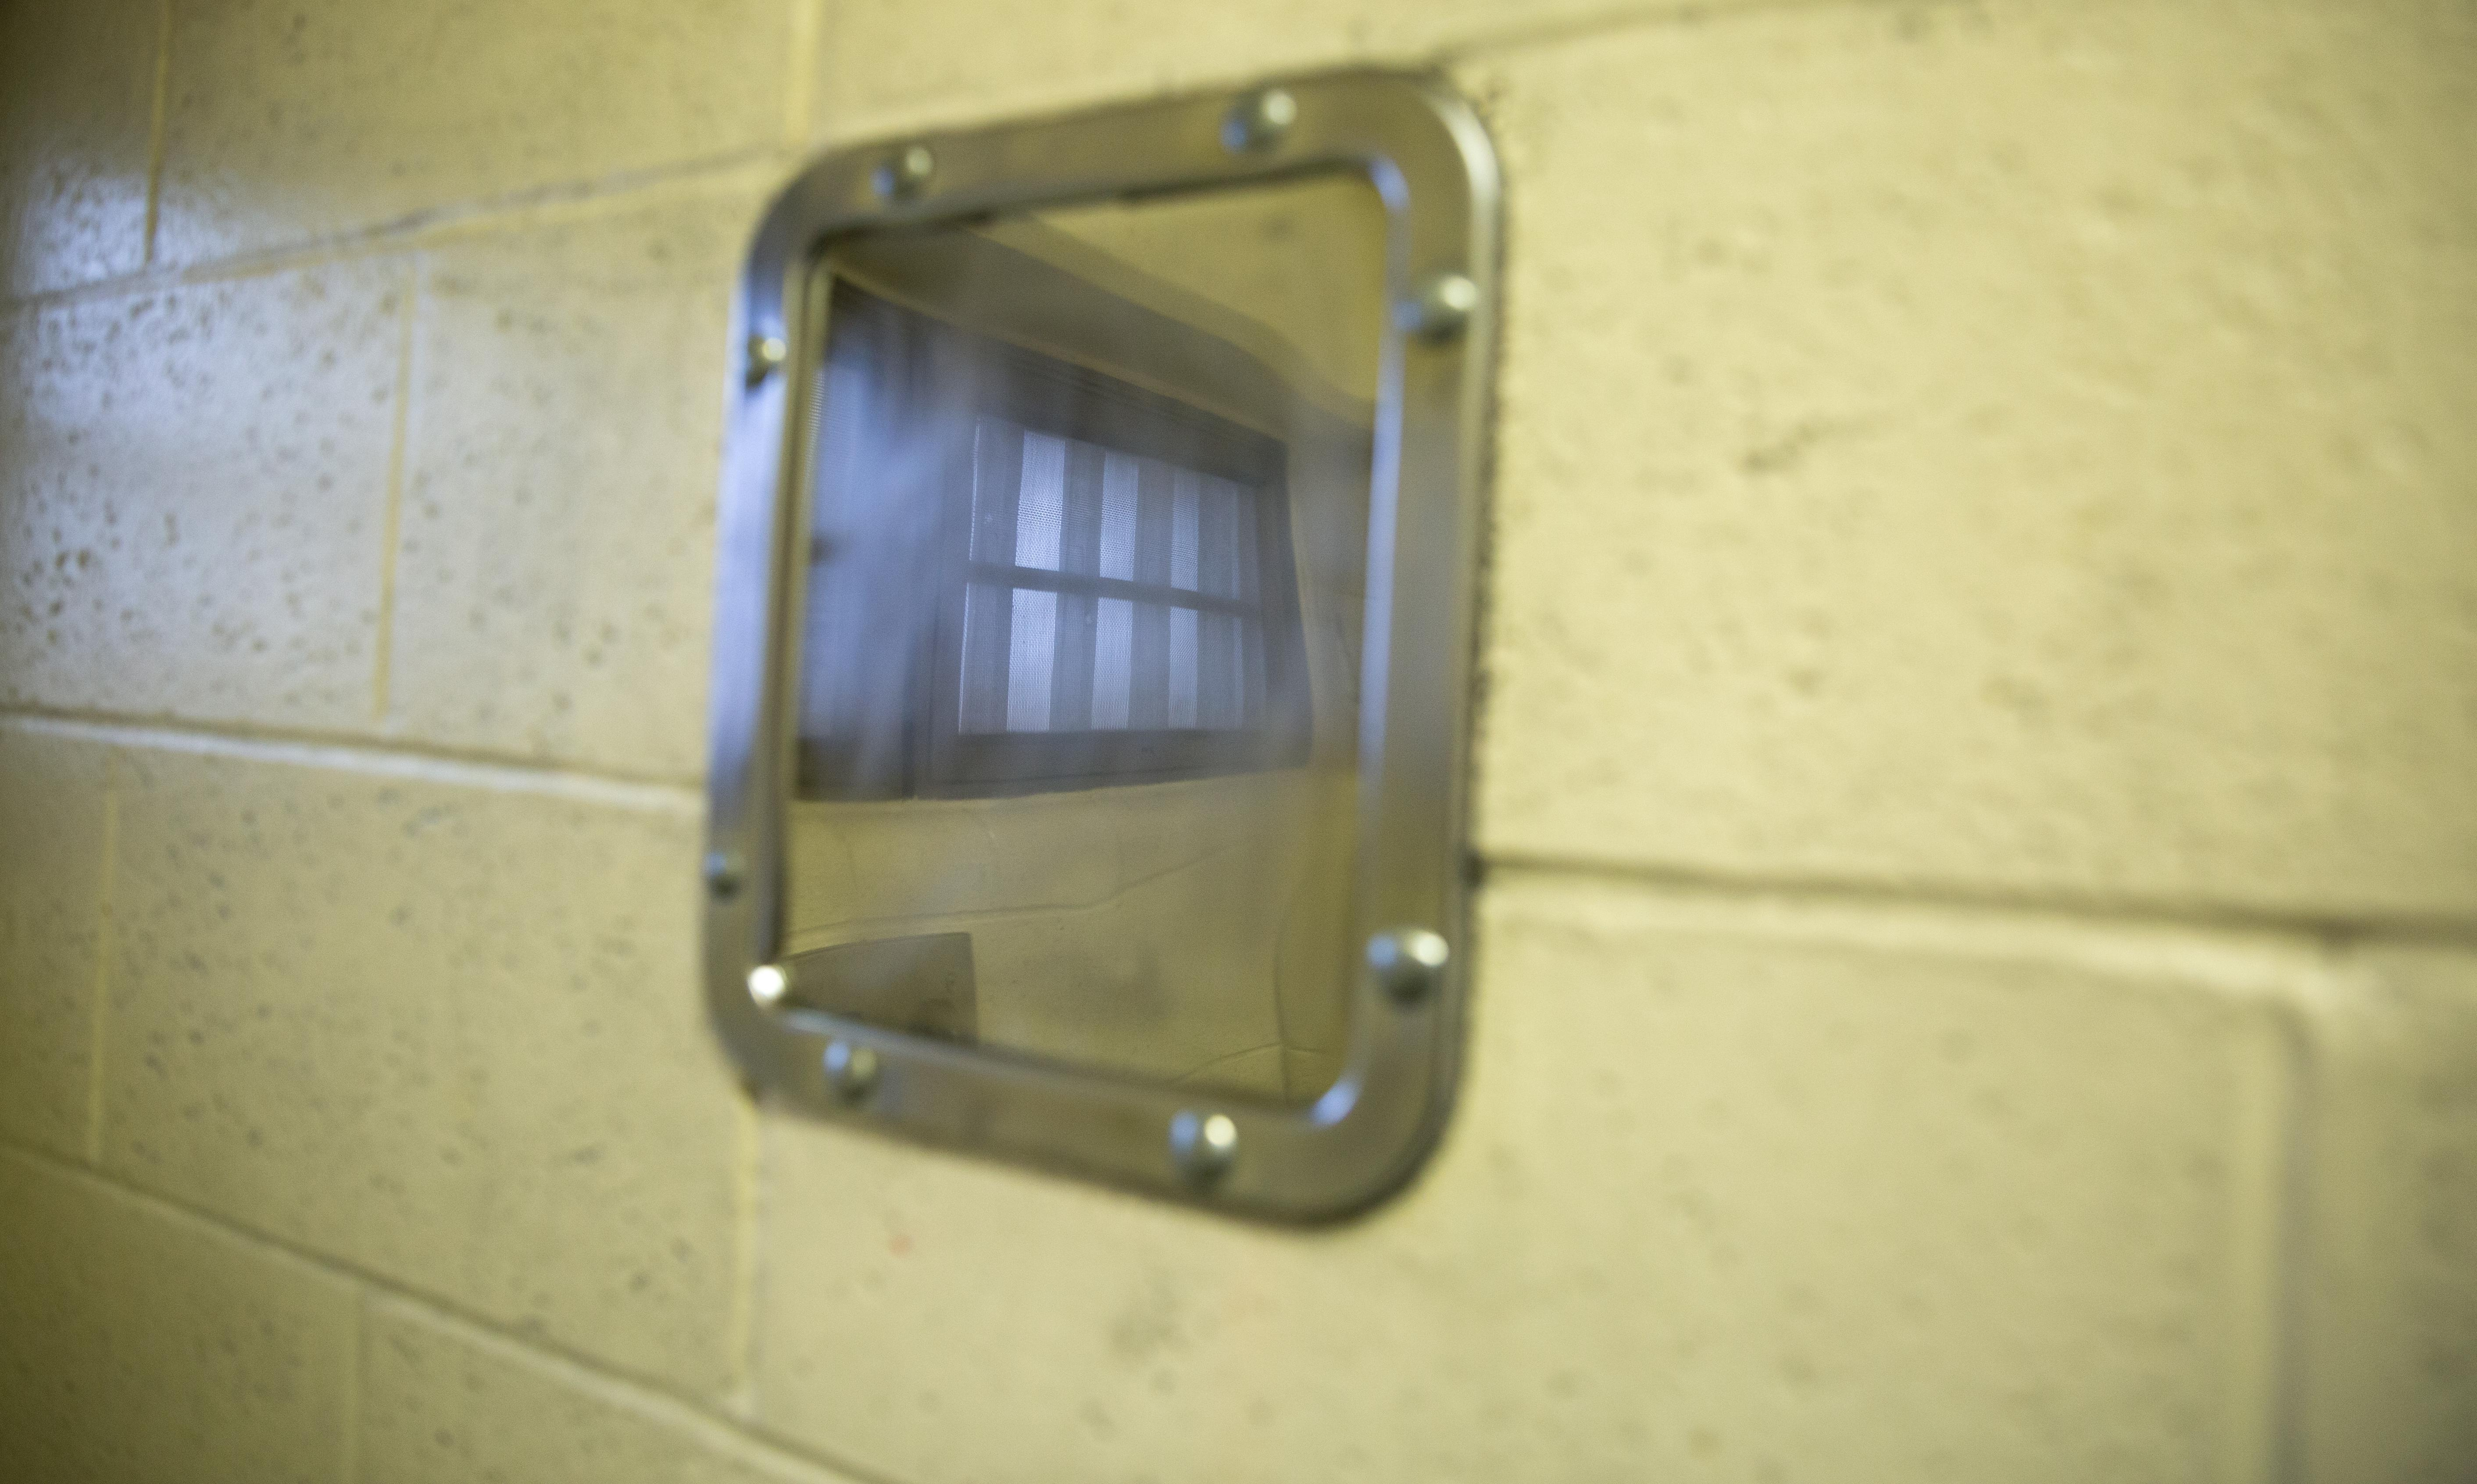 The reflection of a jail cell window is visible in this stainless steel mirror in a Clark County Jail cell in Vancouver, Wash., on March 14, 2019. The mirror is made out of a solid sheet of metal instead of glass.